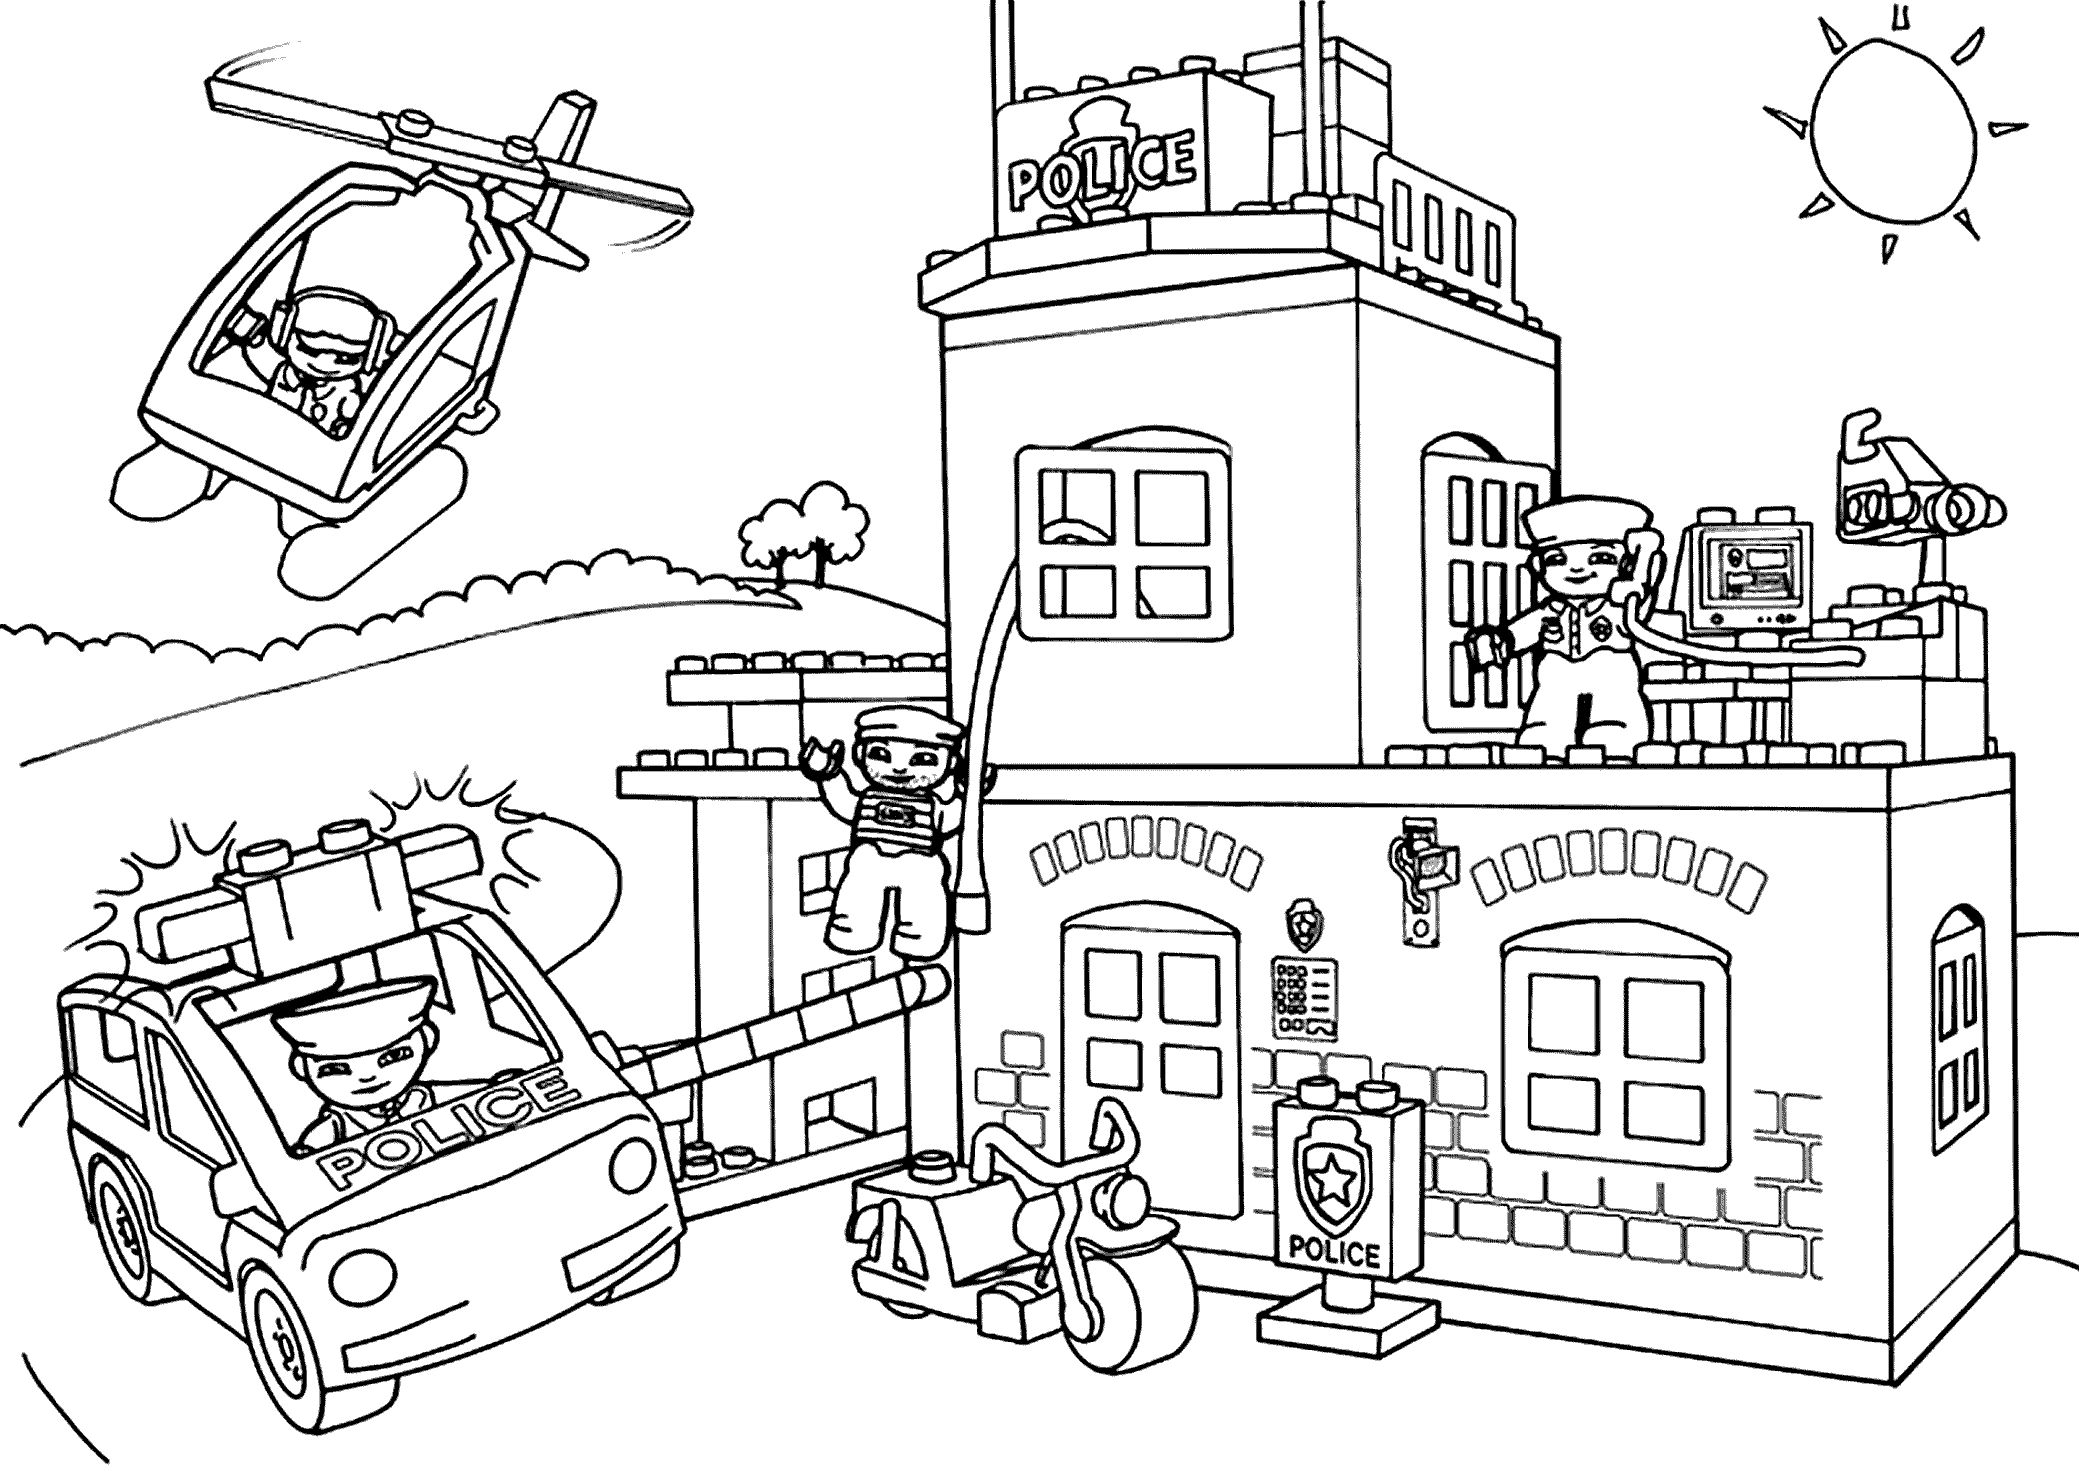 Lego People Coloring Pages Download Lego Coloring Pages Lego Coloring Lego Police